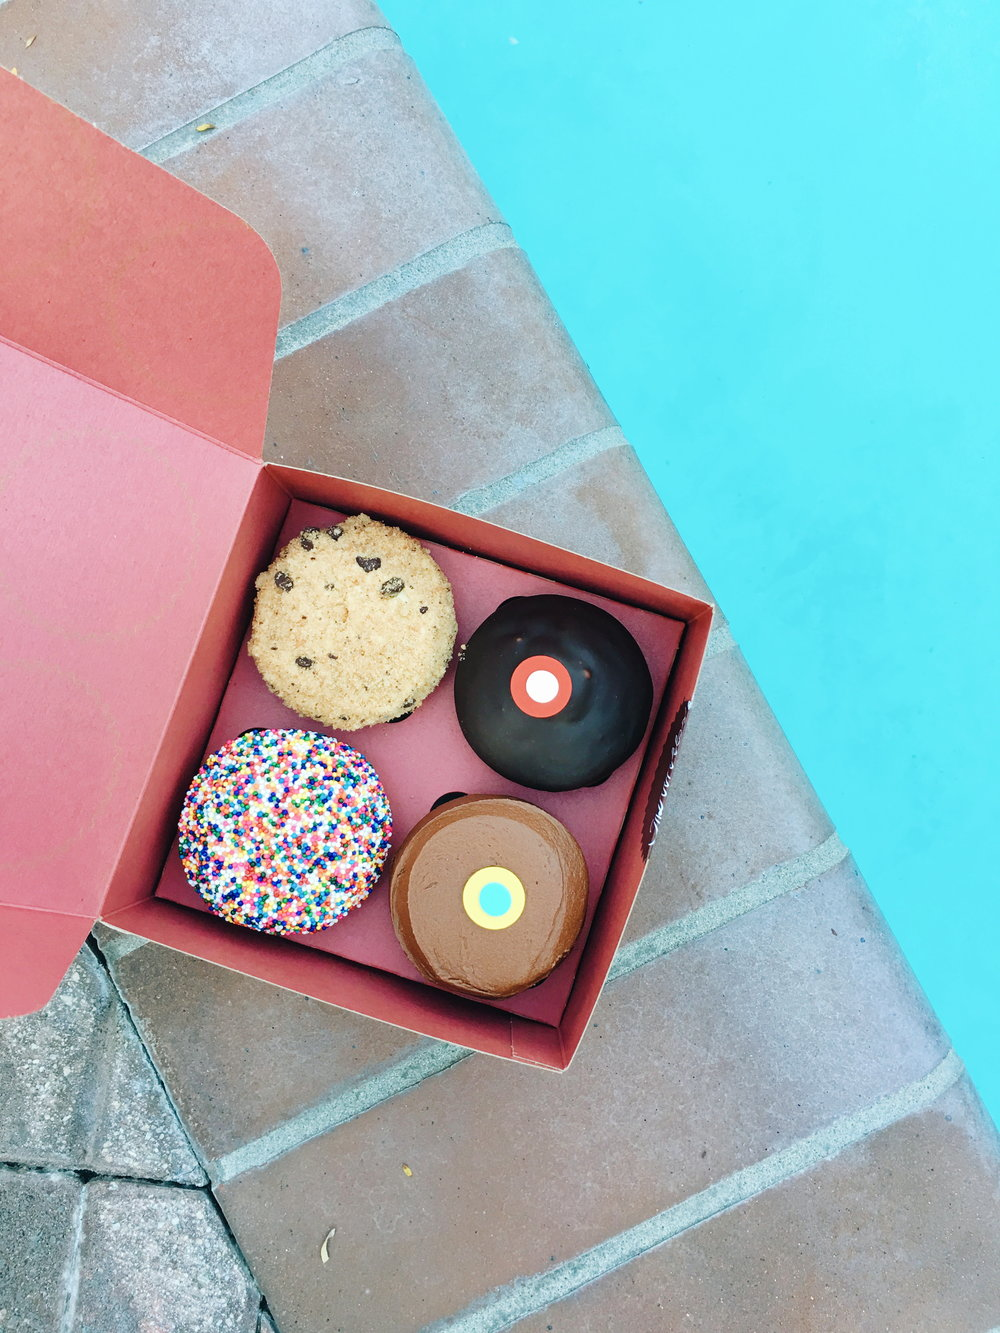 sprinkles-los-angeles-07.jpg